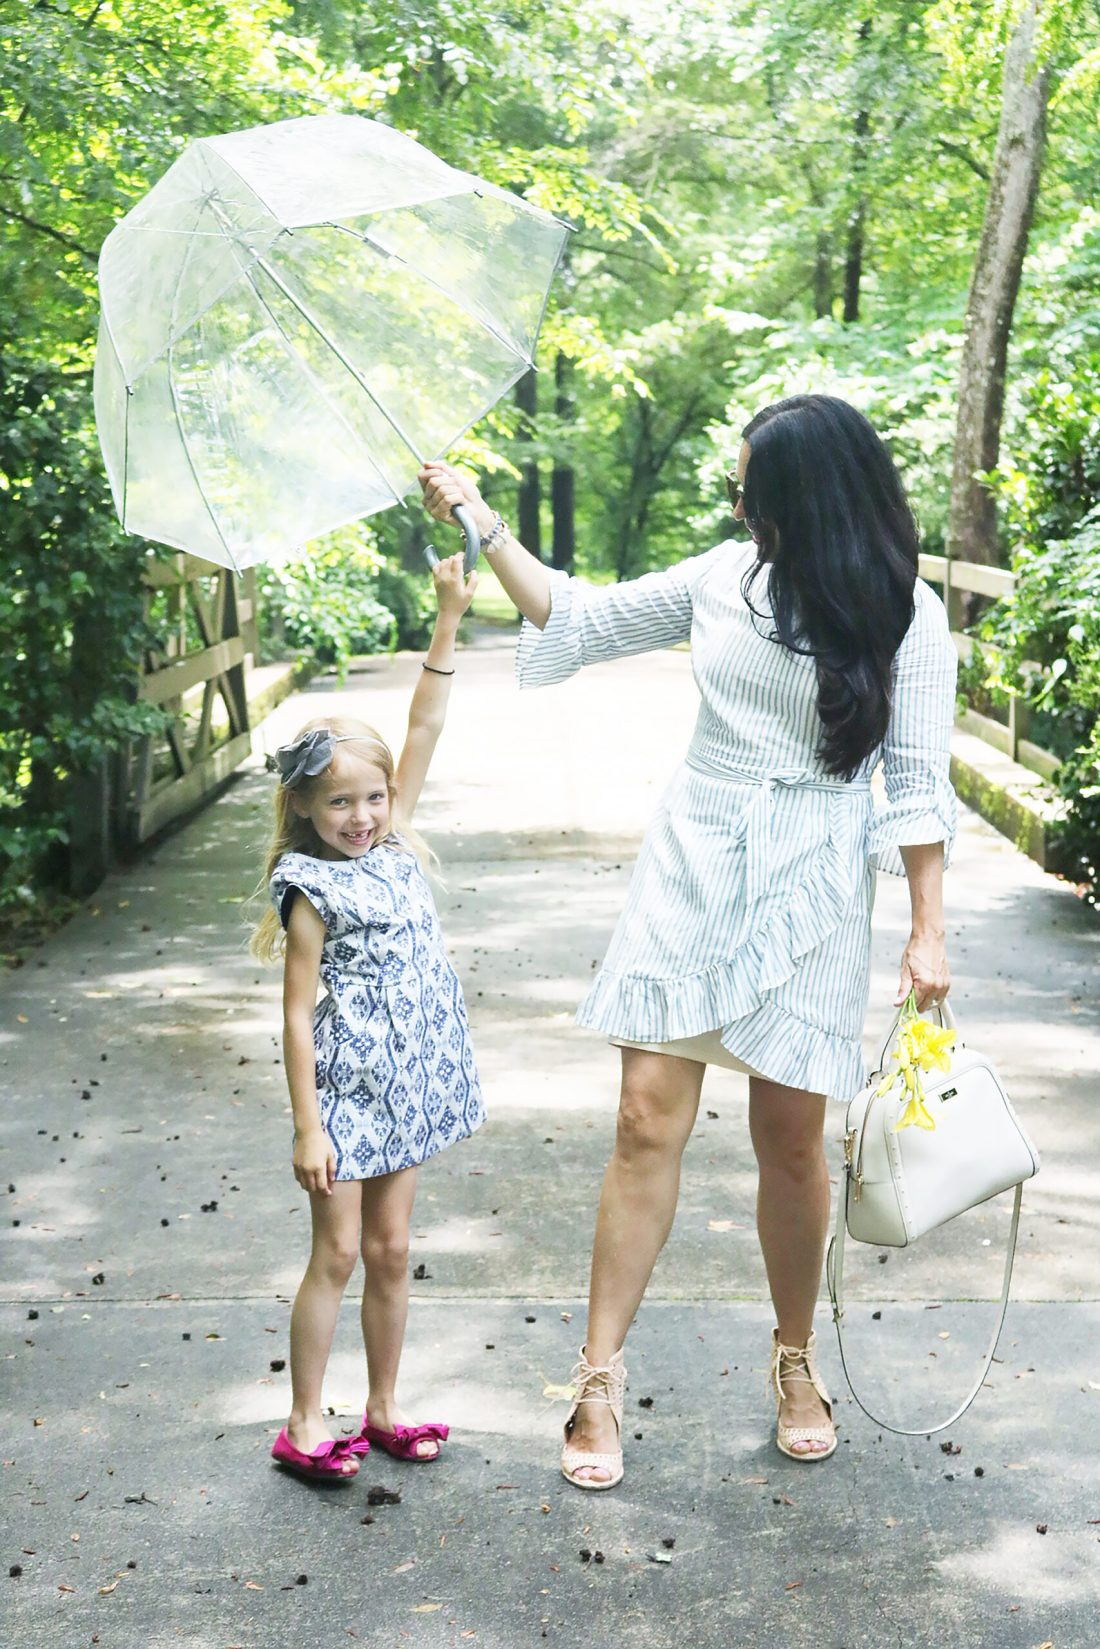 Sharing Simple Mother's Day Tips and Gifts to bring a smile to All Mothers this Year || Darling Darleen Top Lifestyle Connecticut Blogger #mothersday #mothersdaytips #mothersday2020